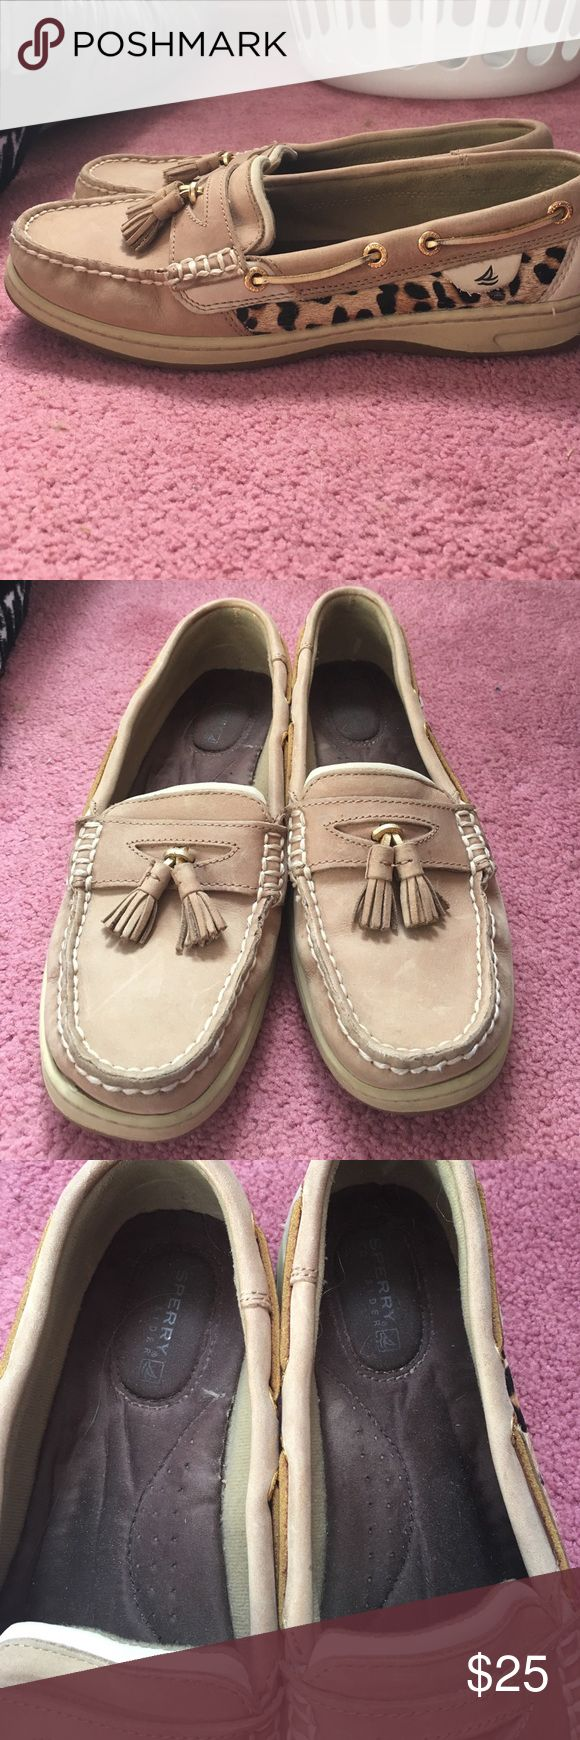 Sorrry Top Siders tan and cheetah sperrys for sale! in good condition only worn a couple of times, feel free to ask questions or offers! Sperry Top-Sider Shoes Flats & Loafers